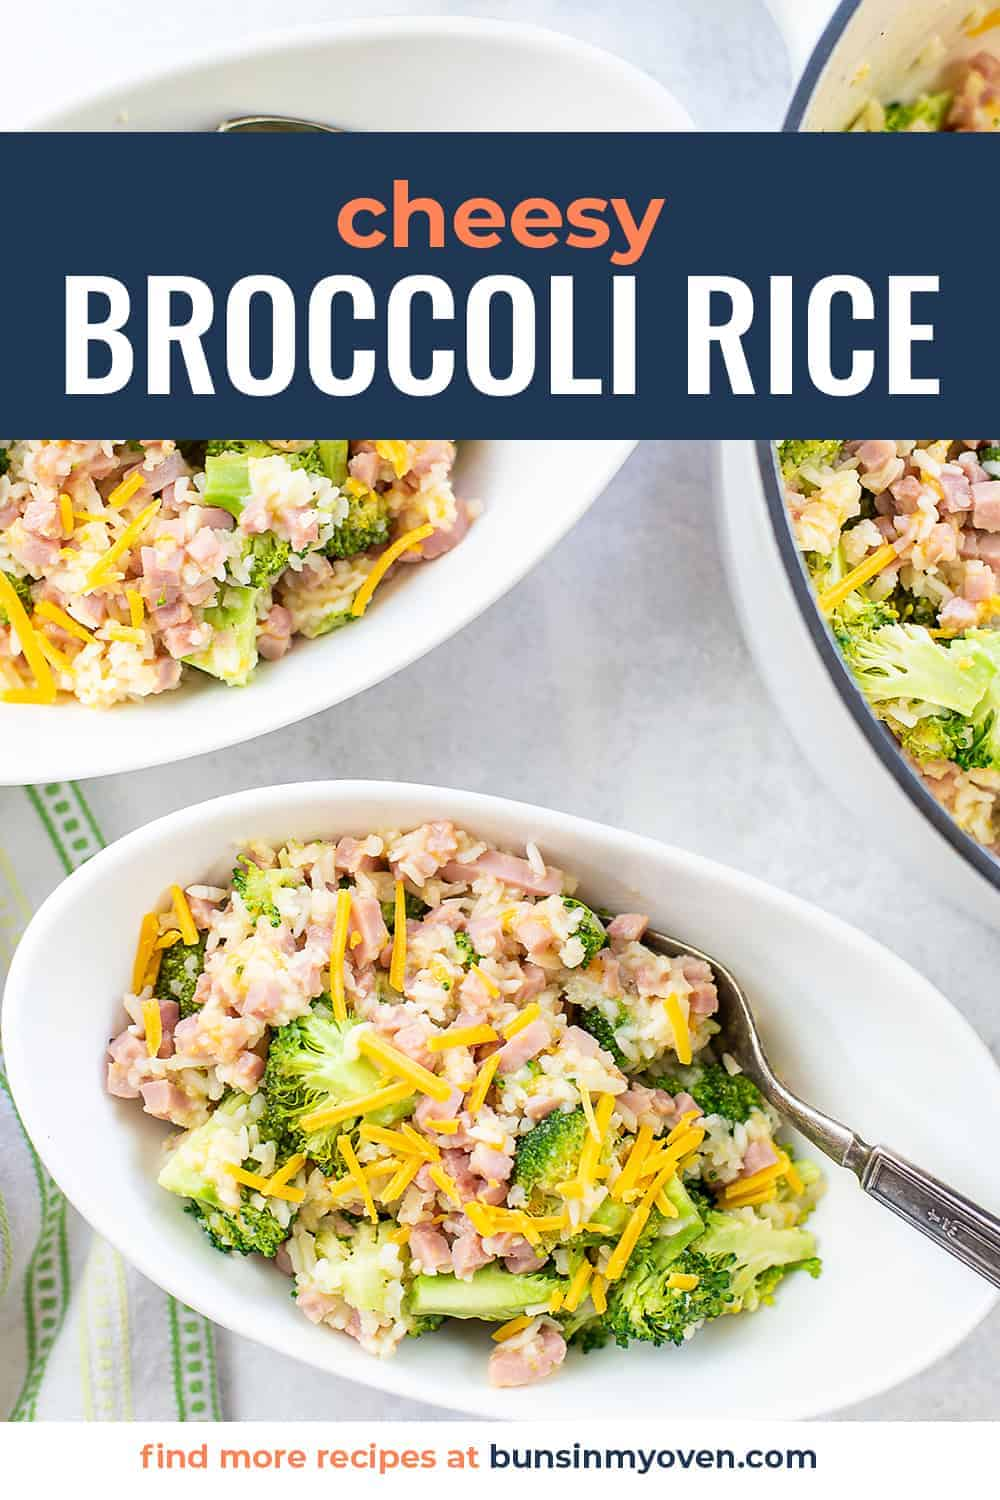 cheesy broccoli rice with text for pinterest.